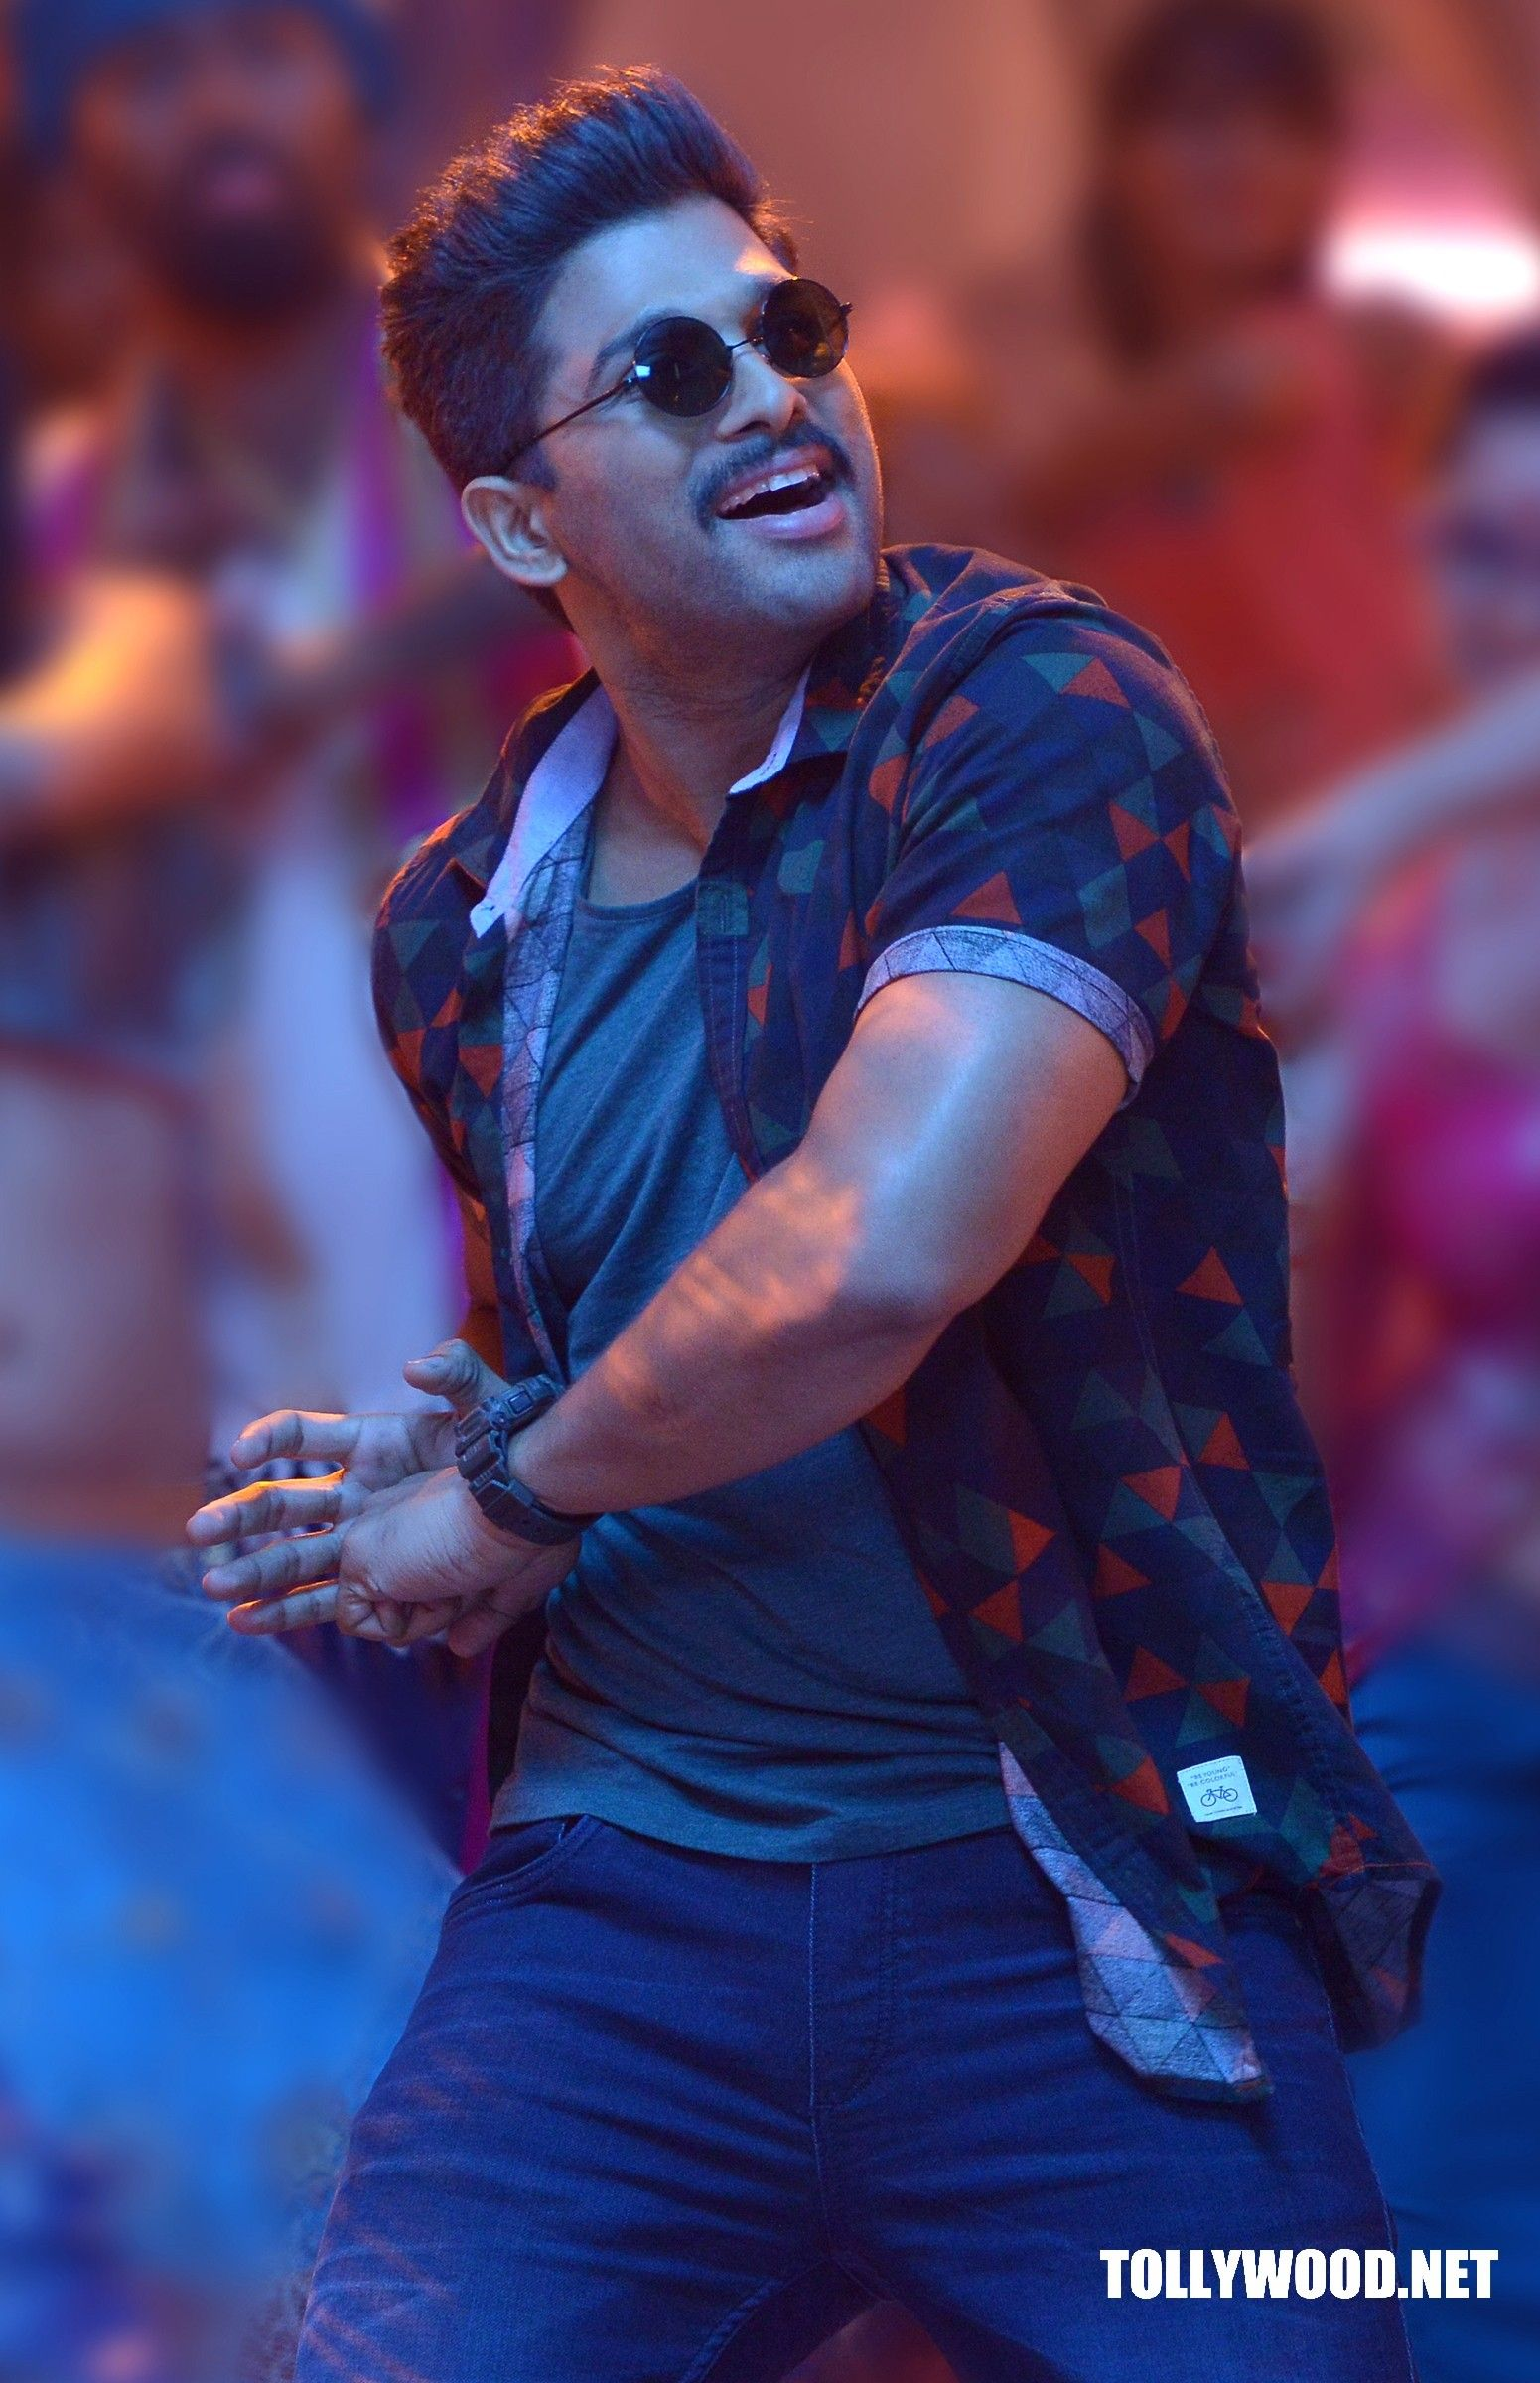 sarrainodu movie new pic | tollywood gossips | pinterest | movie